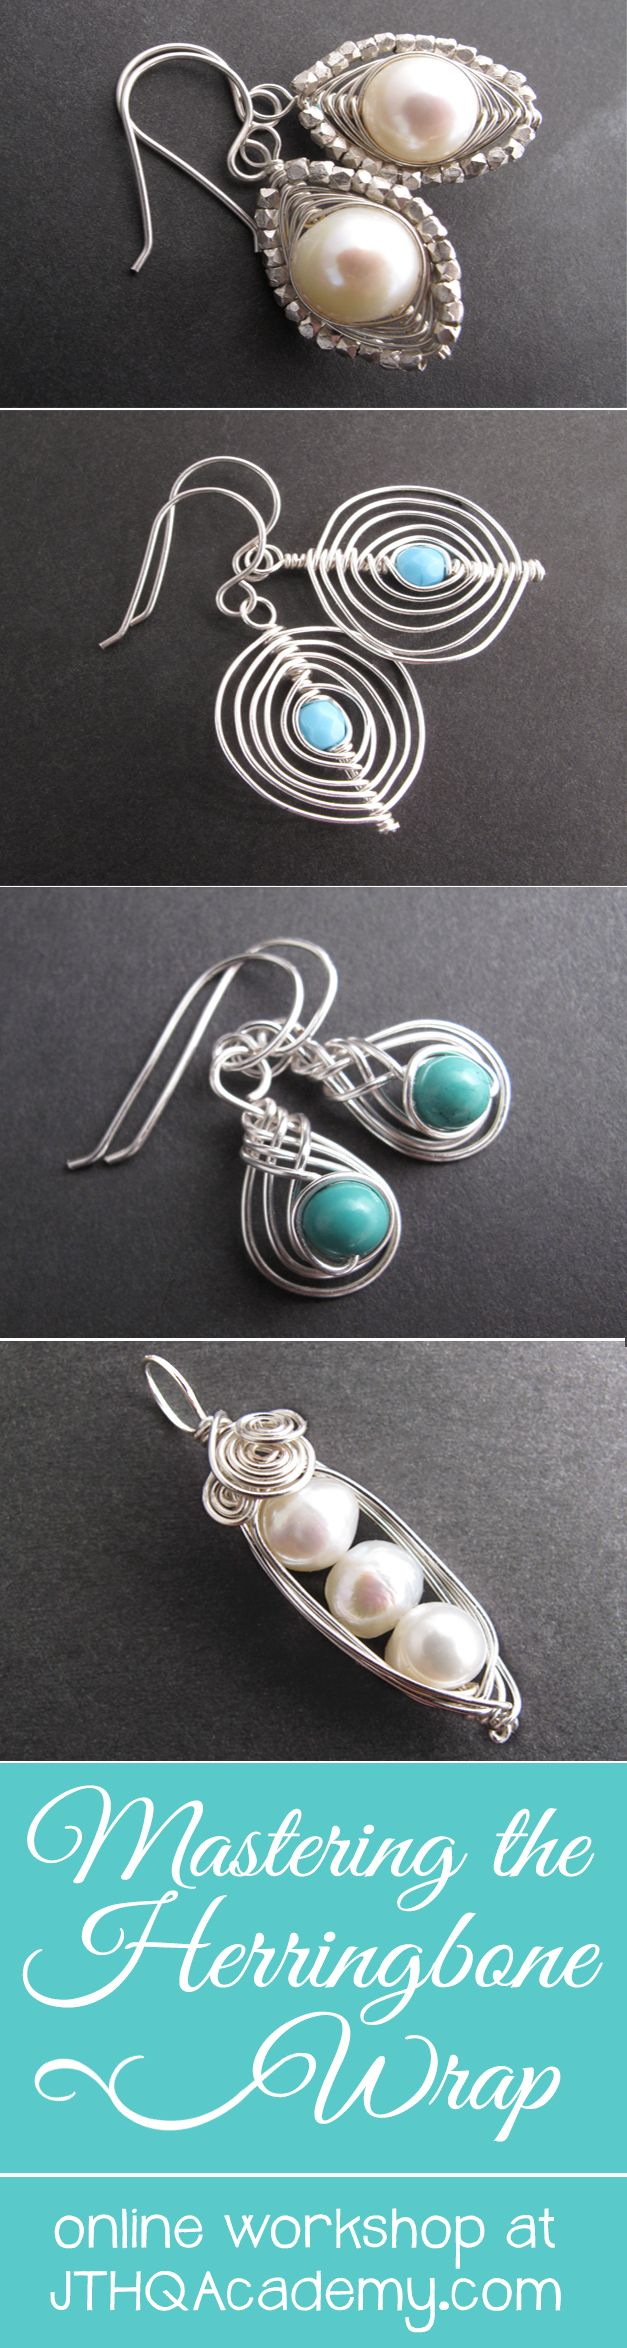 How to Design Jewelry for a Career - thesprucecrafts.com